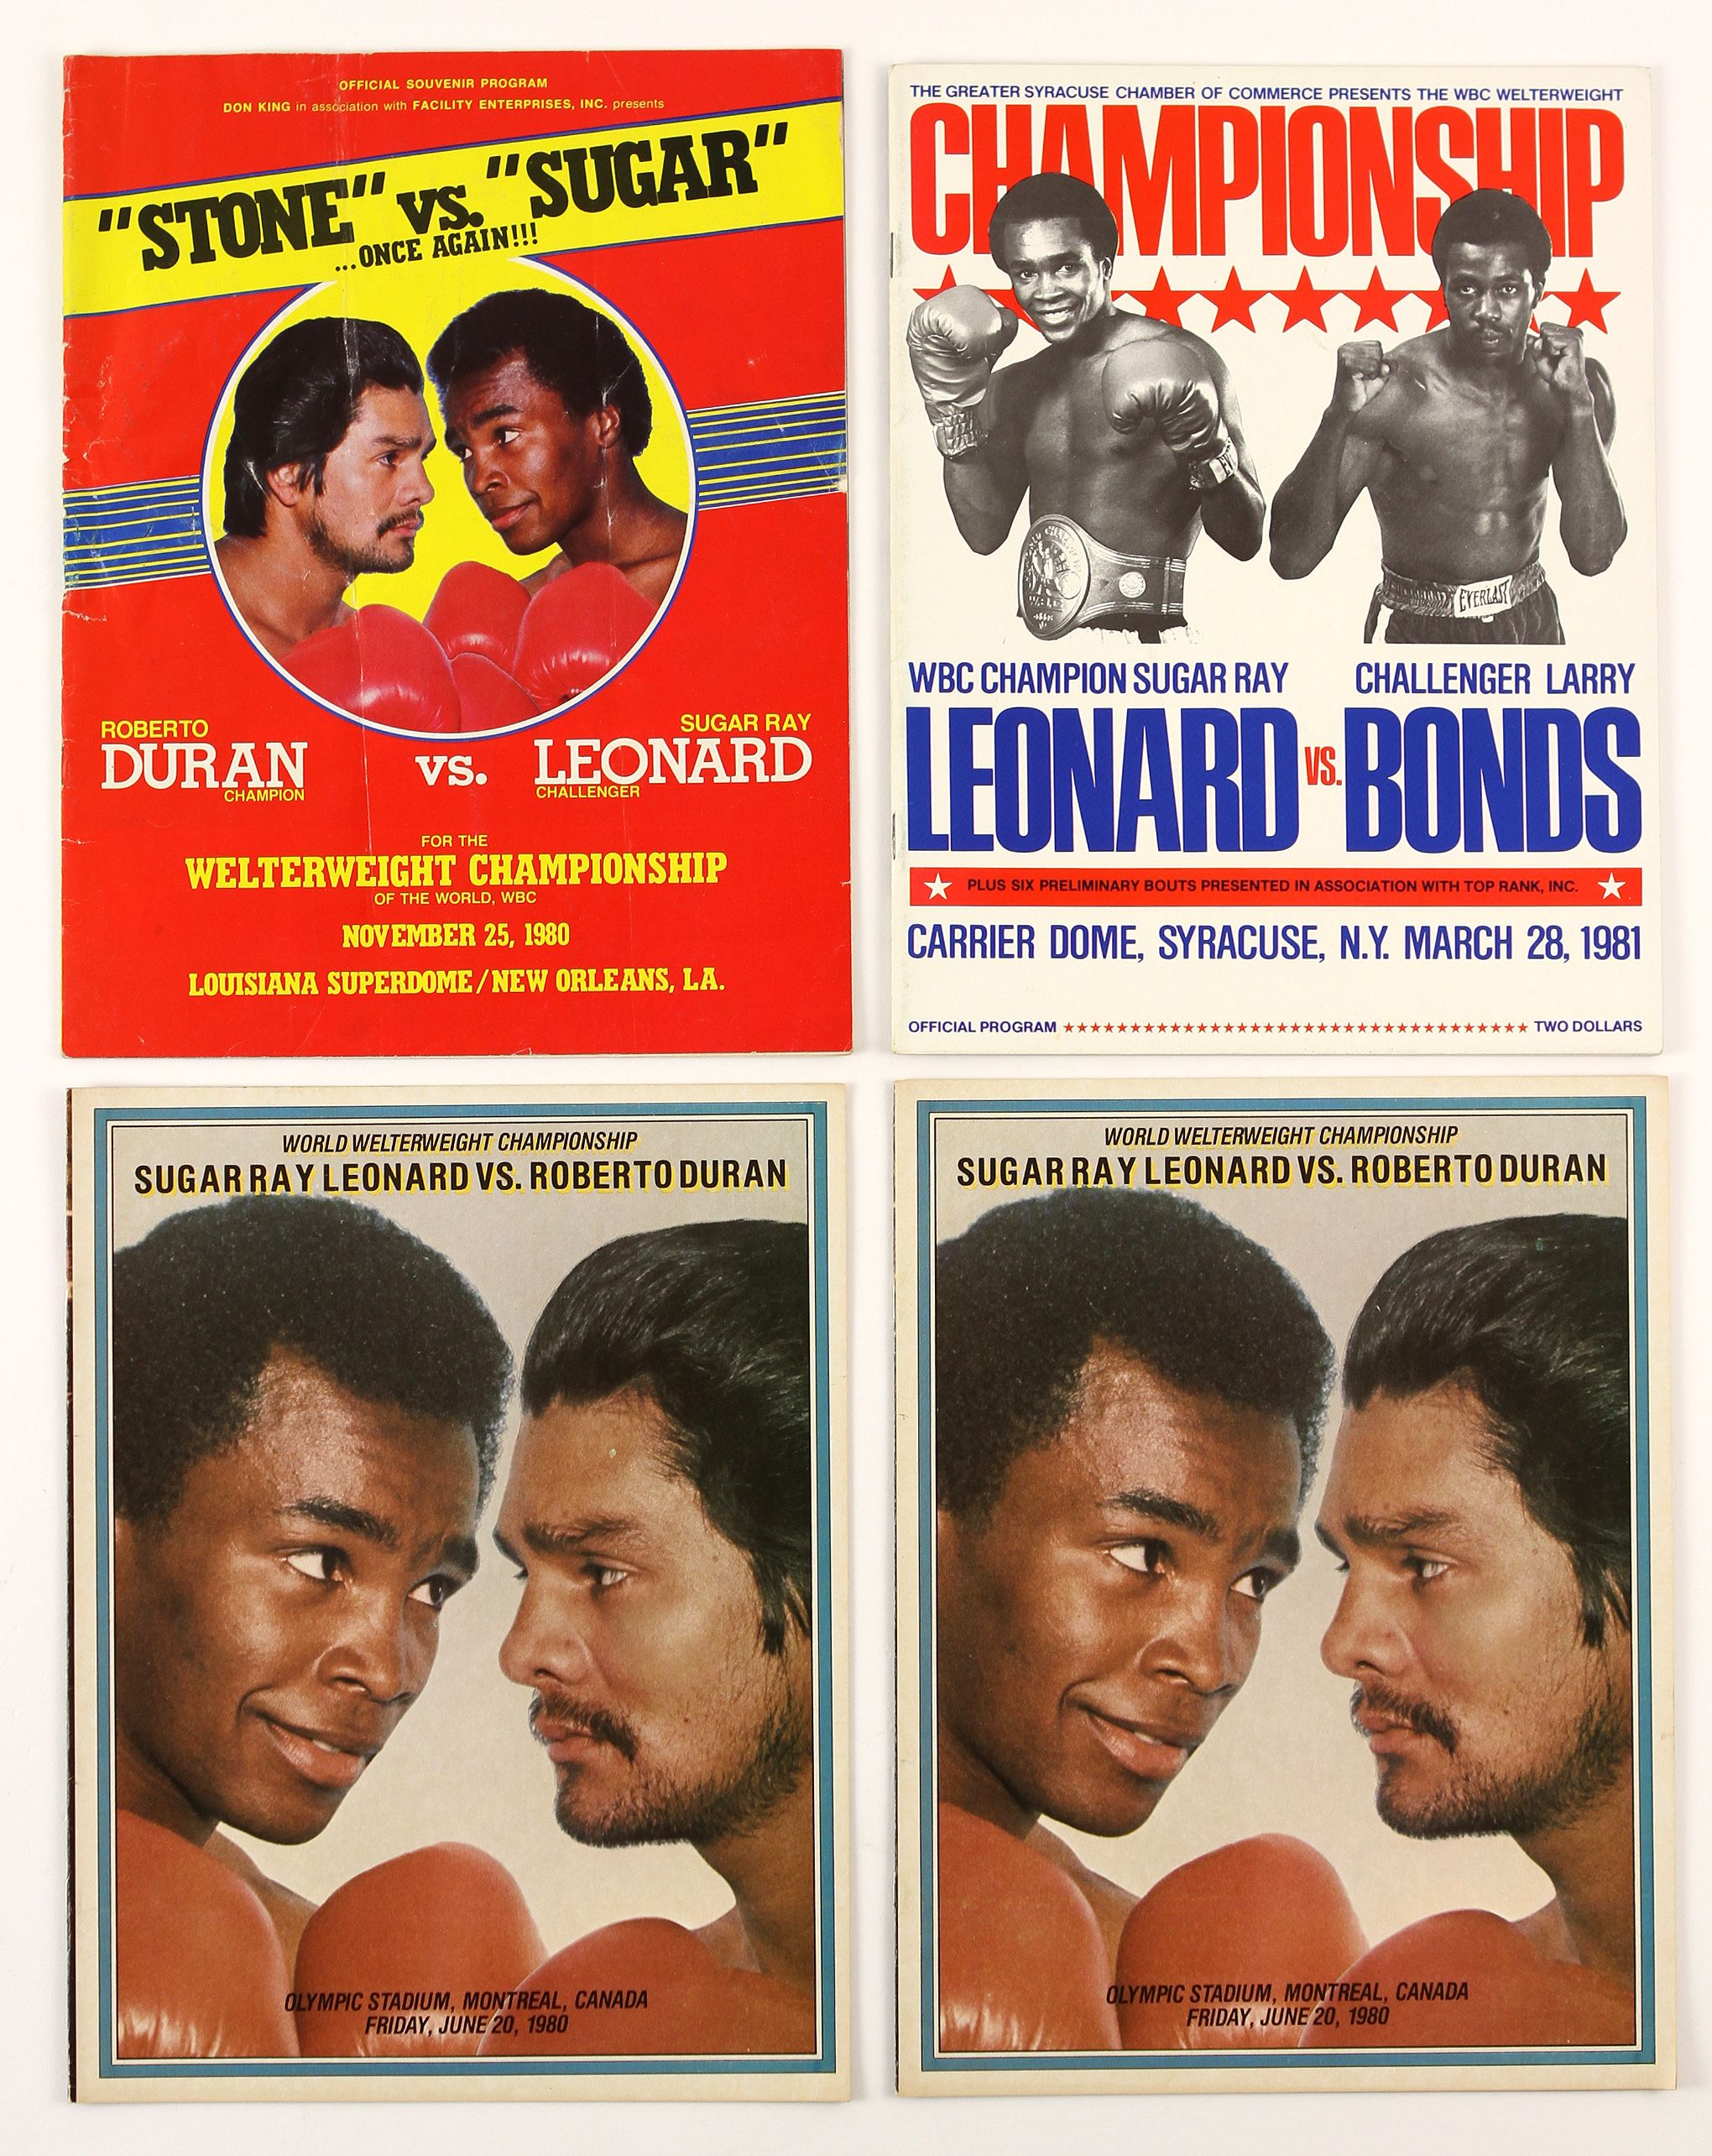 FIGHT PROGRAM MORE SUGAR RAY LEONARD BOUTS.